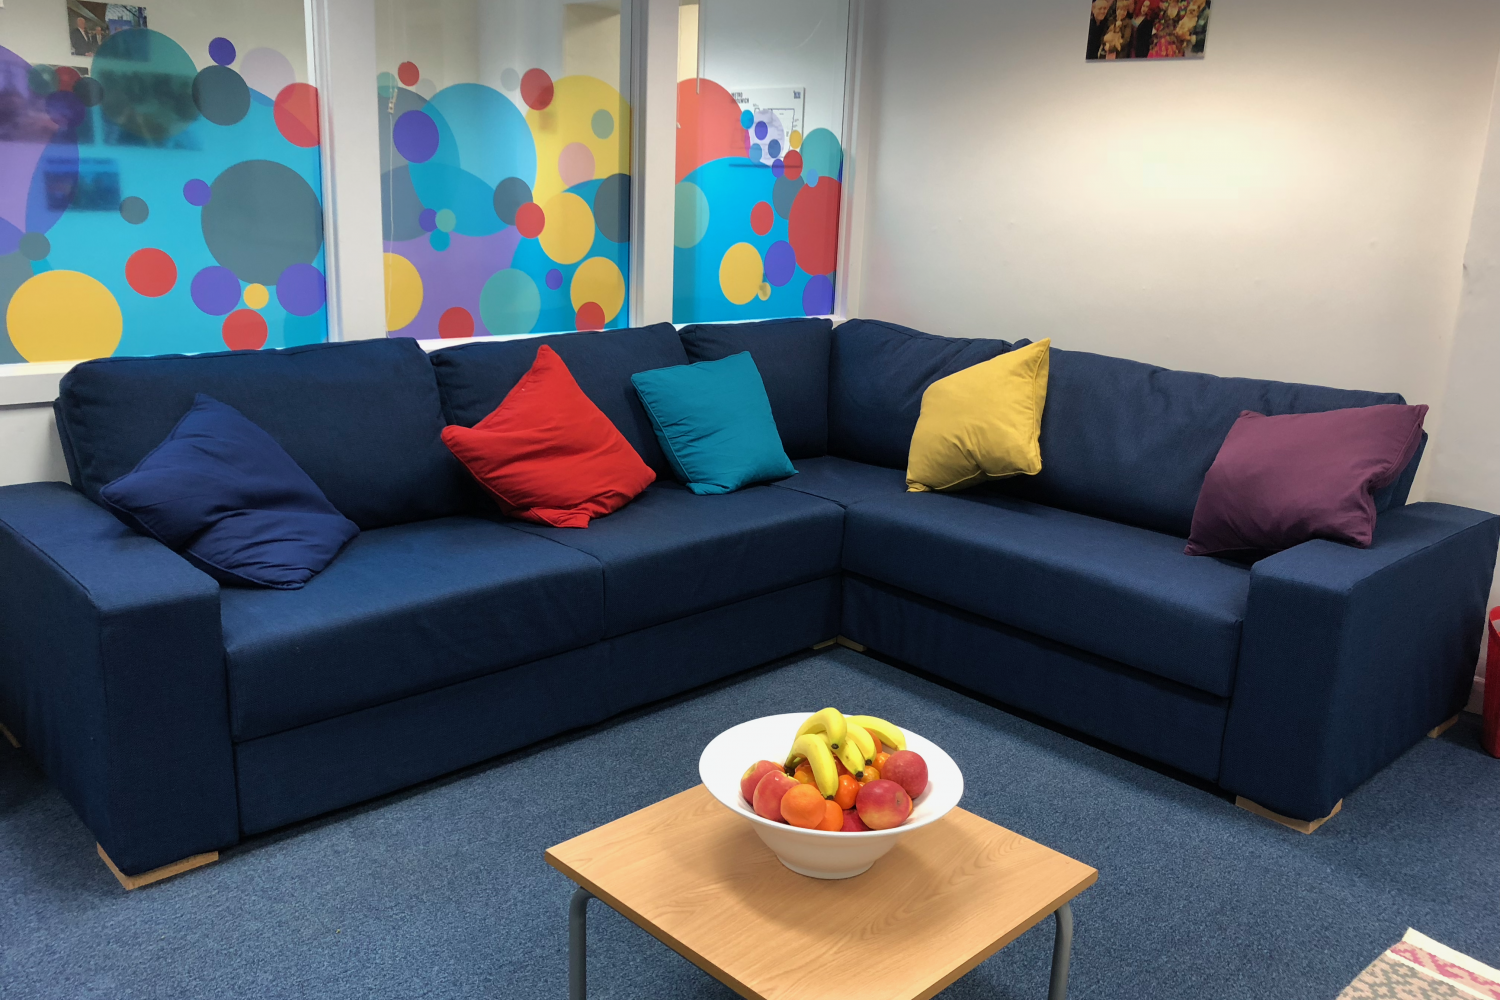 METRO Woolwich breakout room with a bowl of fruit in front of the sofa